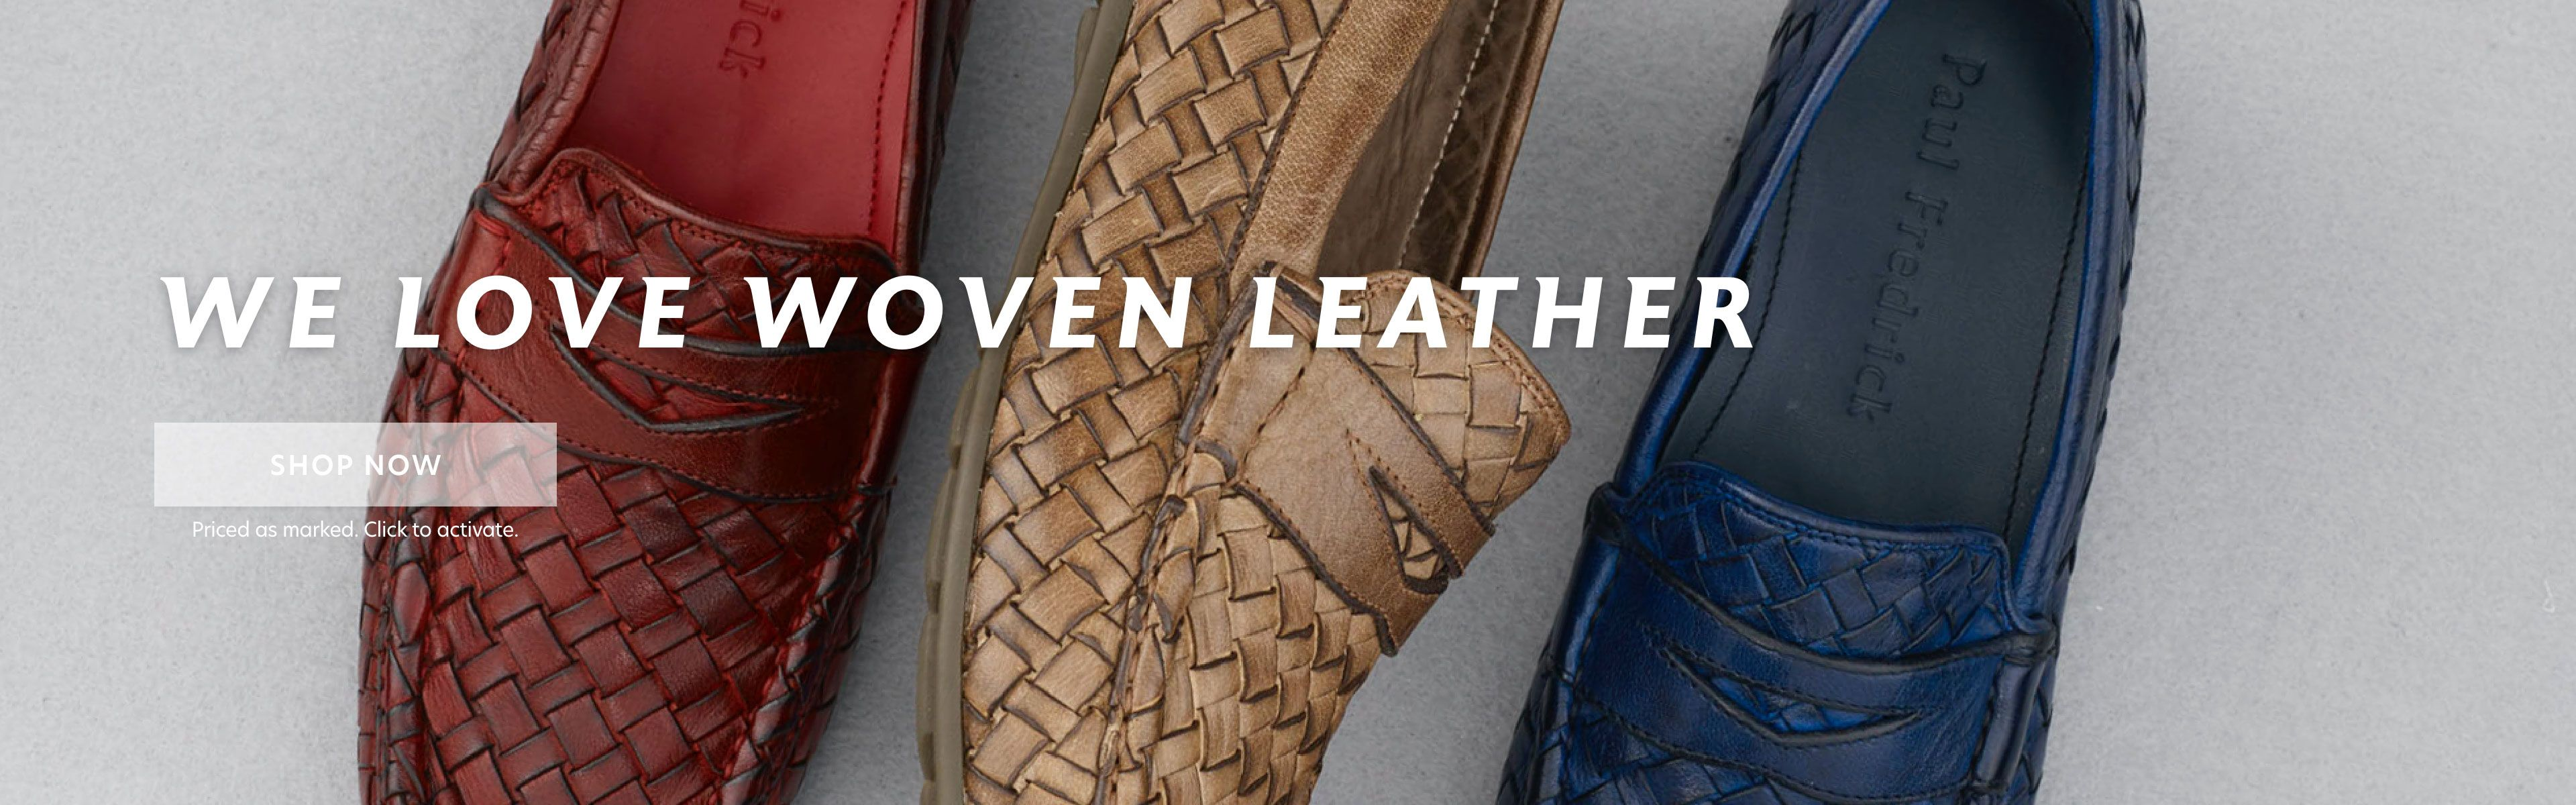 We Love Woven Leather